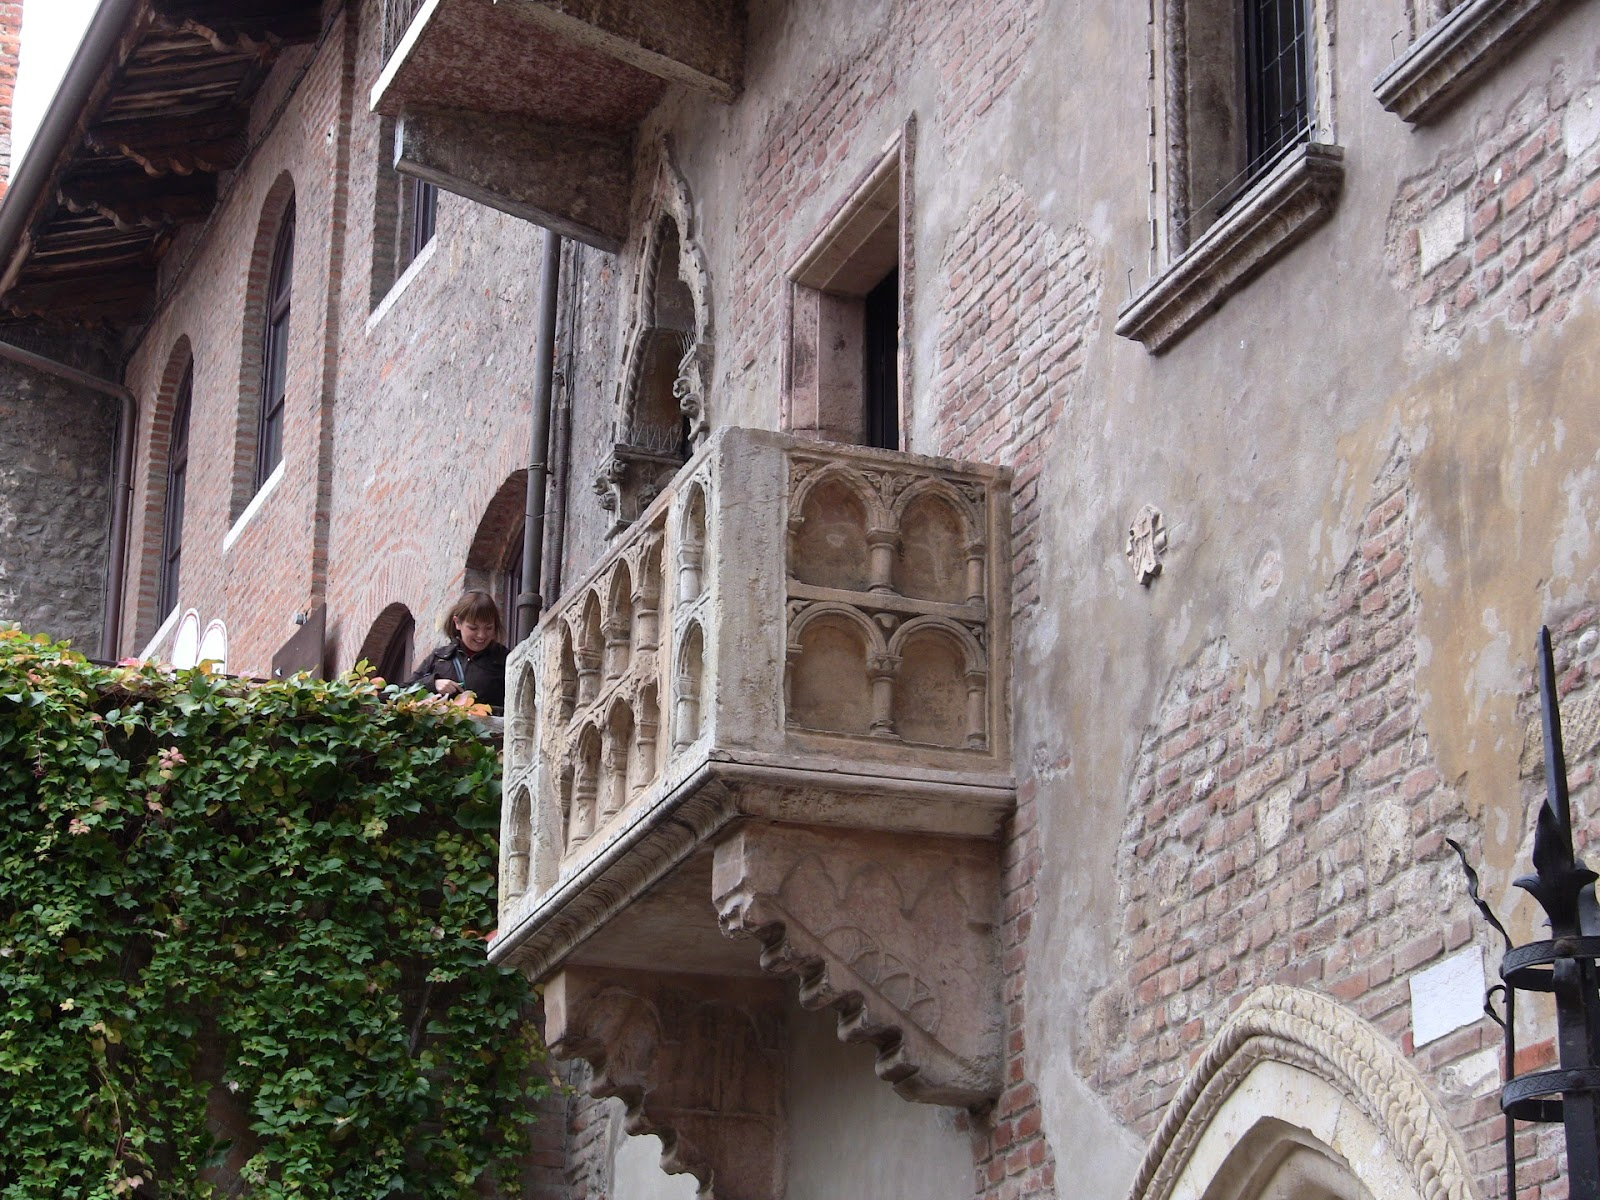 Don't be fooled by Juliet's balcony, it was added only recently in 1928 by the Verona City Council. Photo: Gail Keller, WineTrekkerTV.com